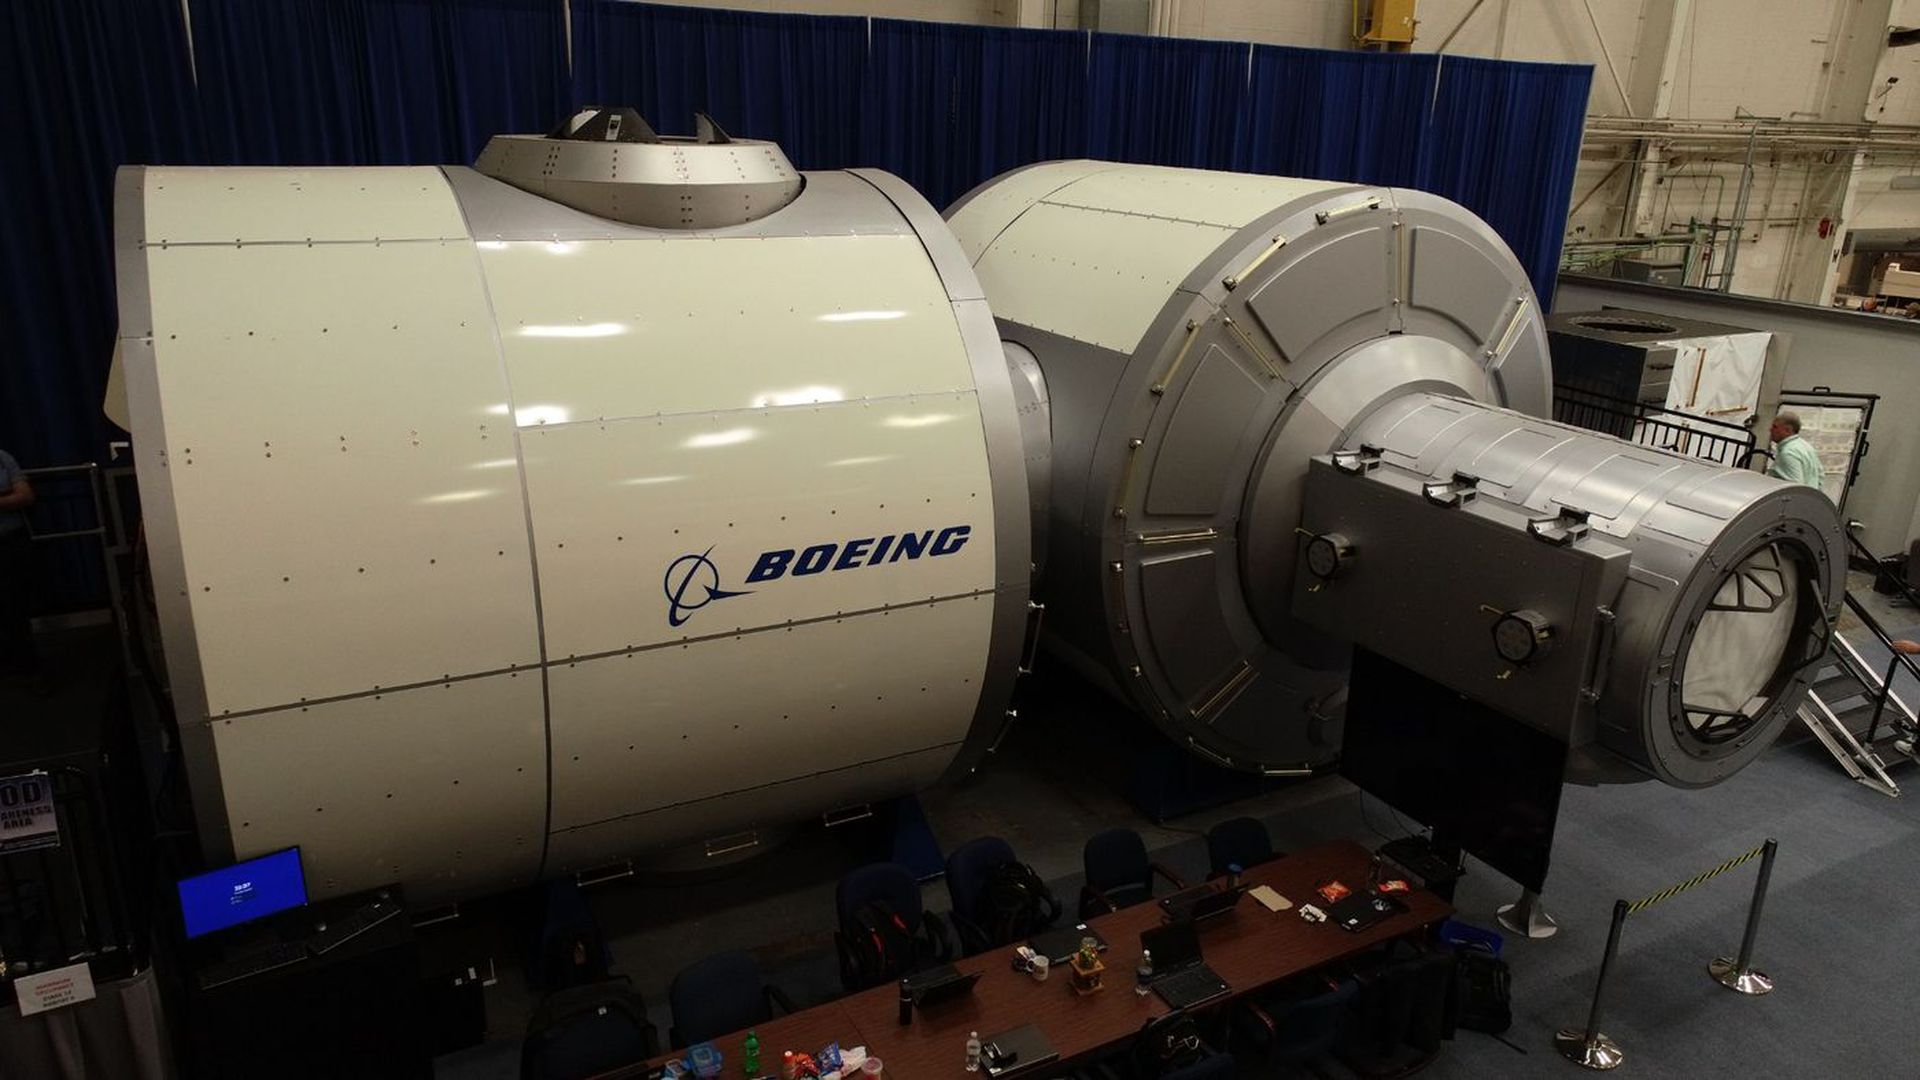 In this image, the Boeing logo is seen on the side of a large white circular gateway demonstrator.